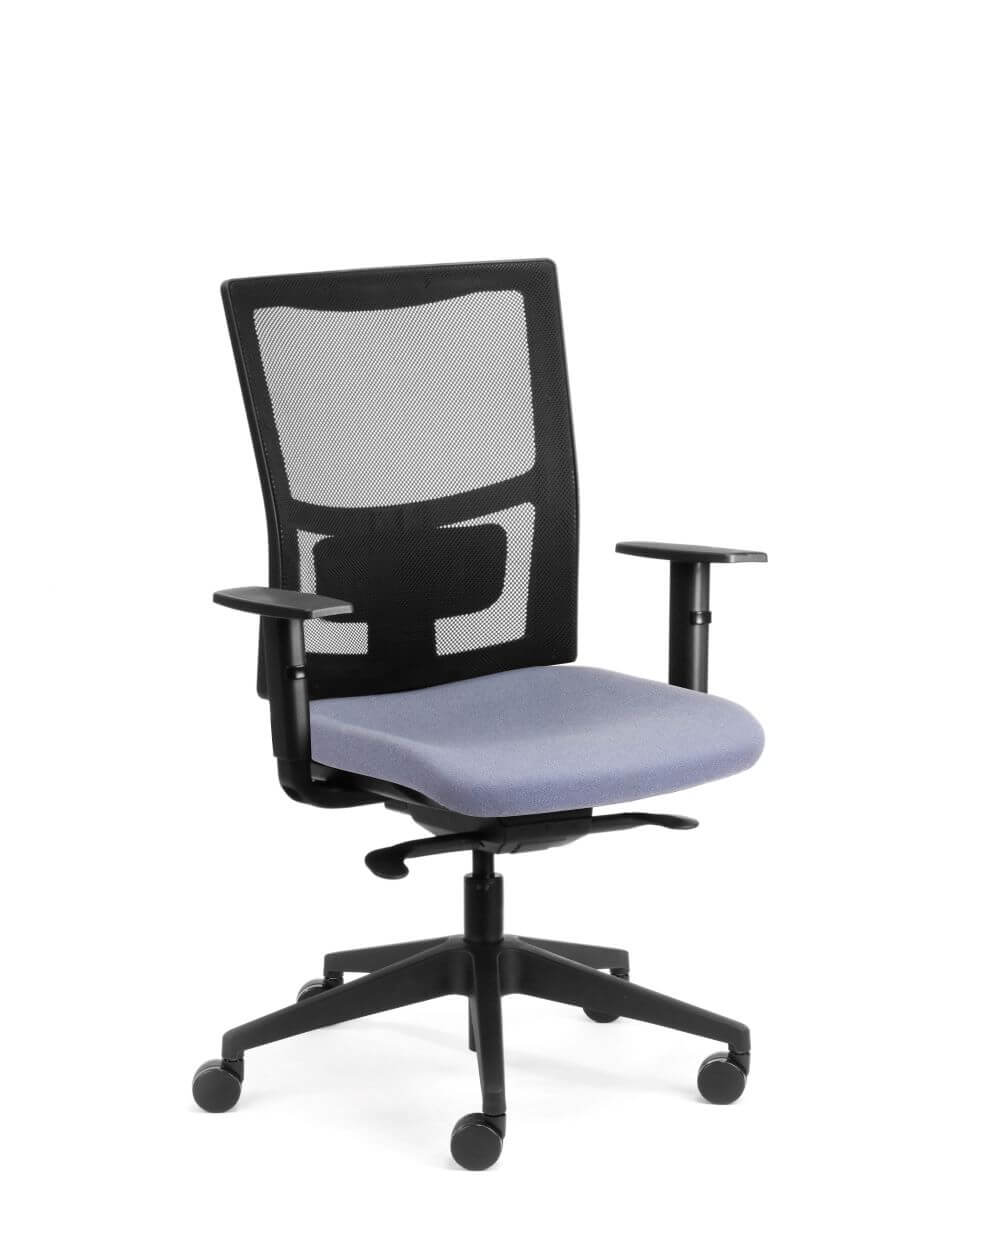 Team Sync with black mesh back, grey seat pad, black armrests and black 5 star base front view